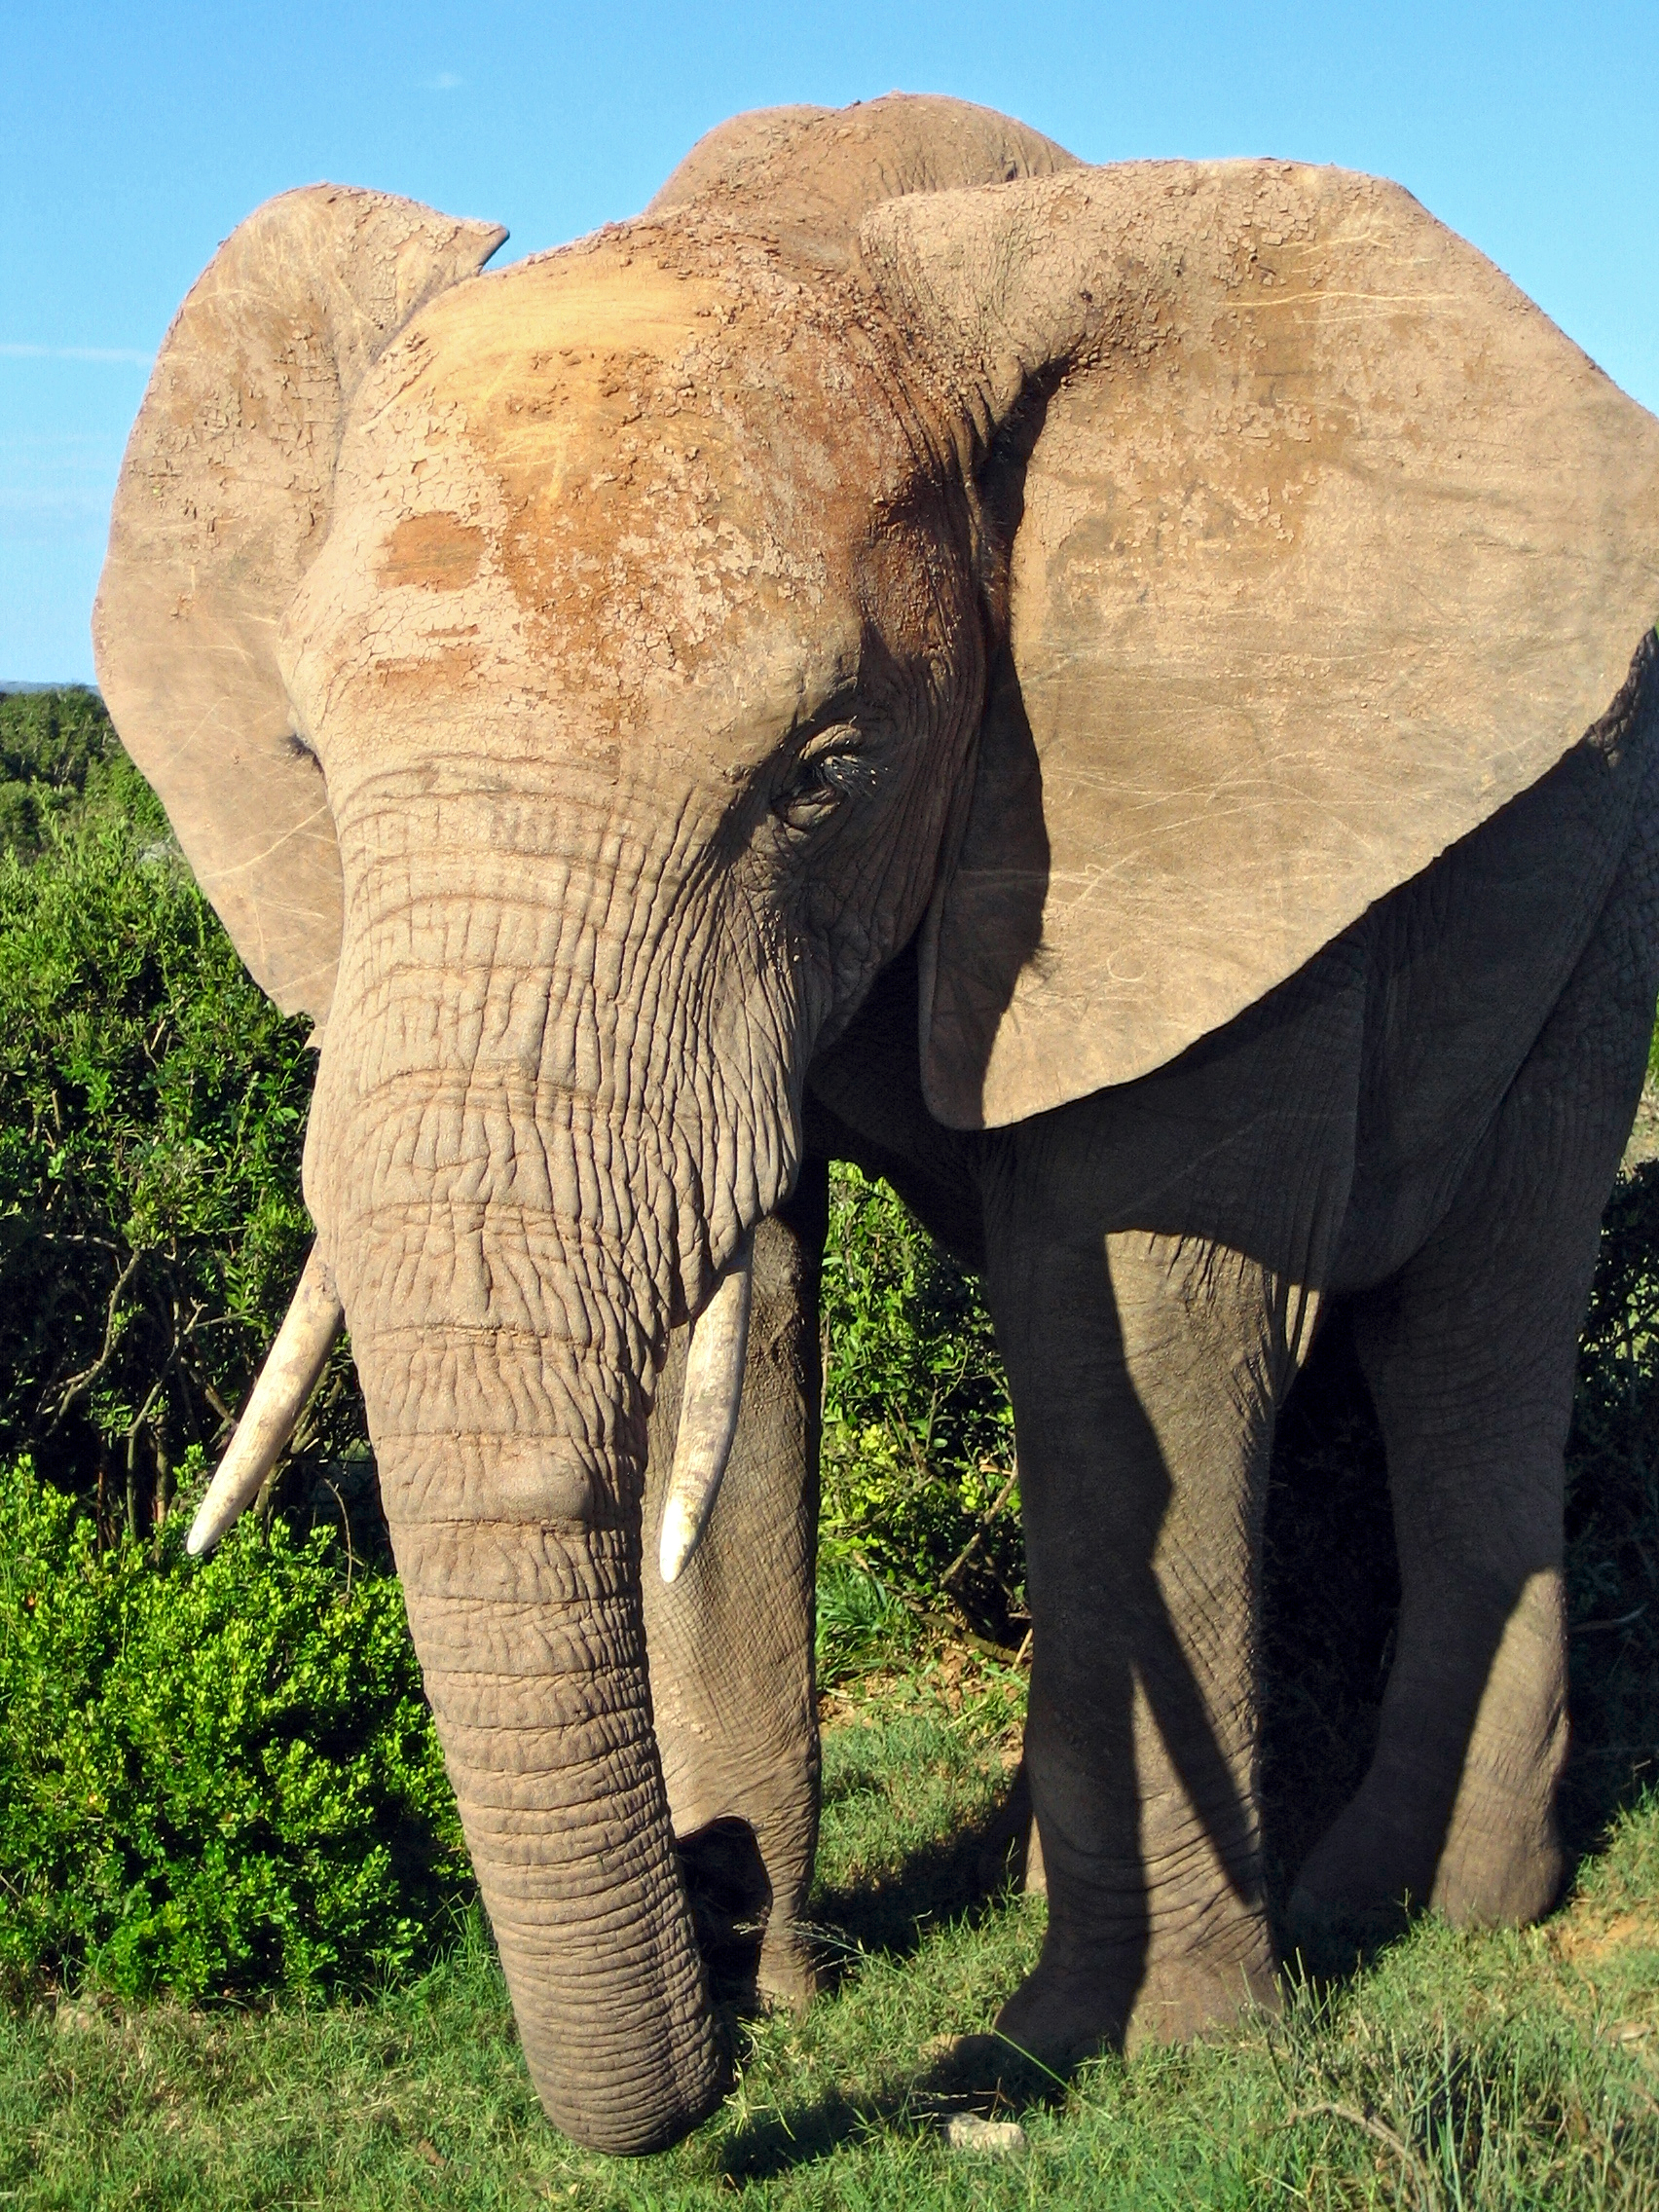 https://upload.wikimedia.org/wikipedia/commons/9/99/African_Elephant.jpg